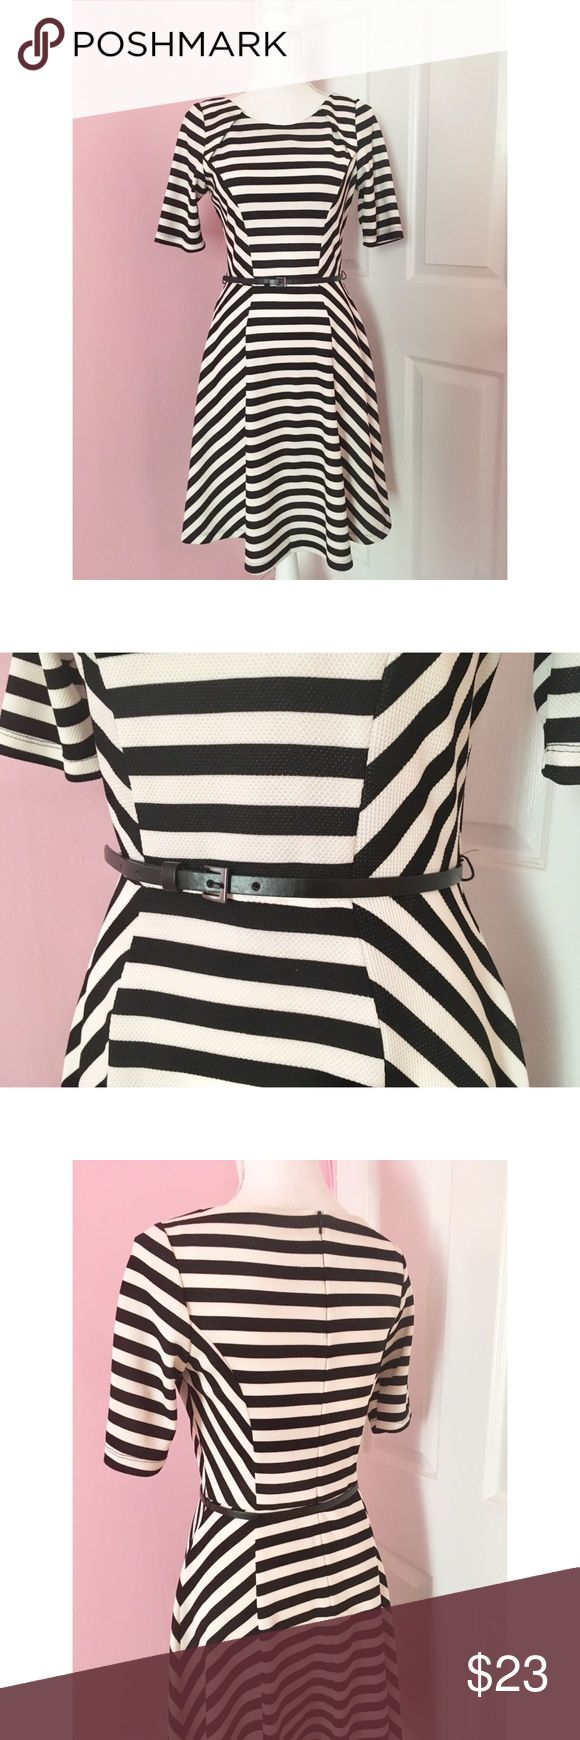 Black & White Striped Dress 👗 Size 10  🛍 Great Condition  ❌ Sorry No Holds/Trades/PayPal  ✅ Negotiable On Price  👗 W BHS (Britain Home Store) Black and White Striped Dress. Beautiful dress in like new condition. Size 10 in UK which fits smaller (approximate size 6 in US) Comes with belt.   Model Size Bust  Waist  Hips W Dresses